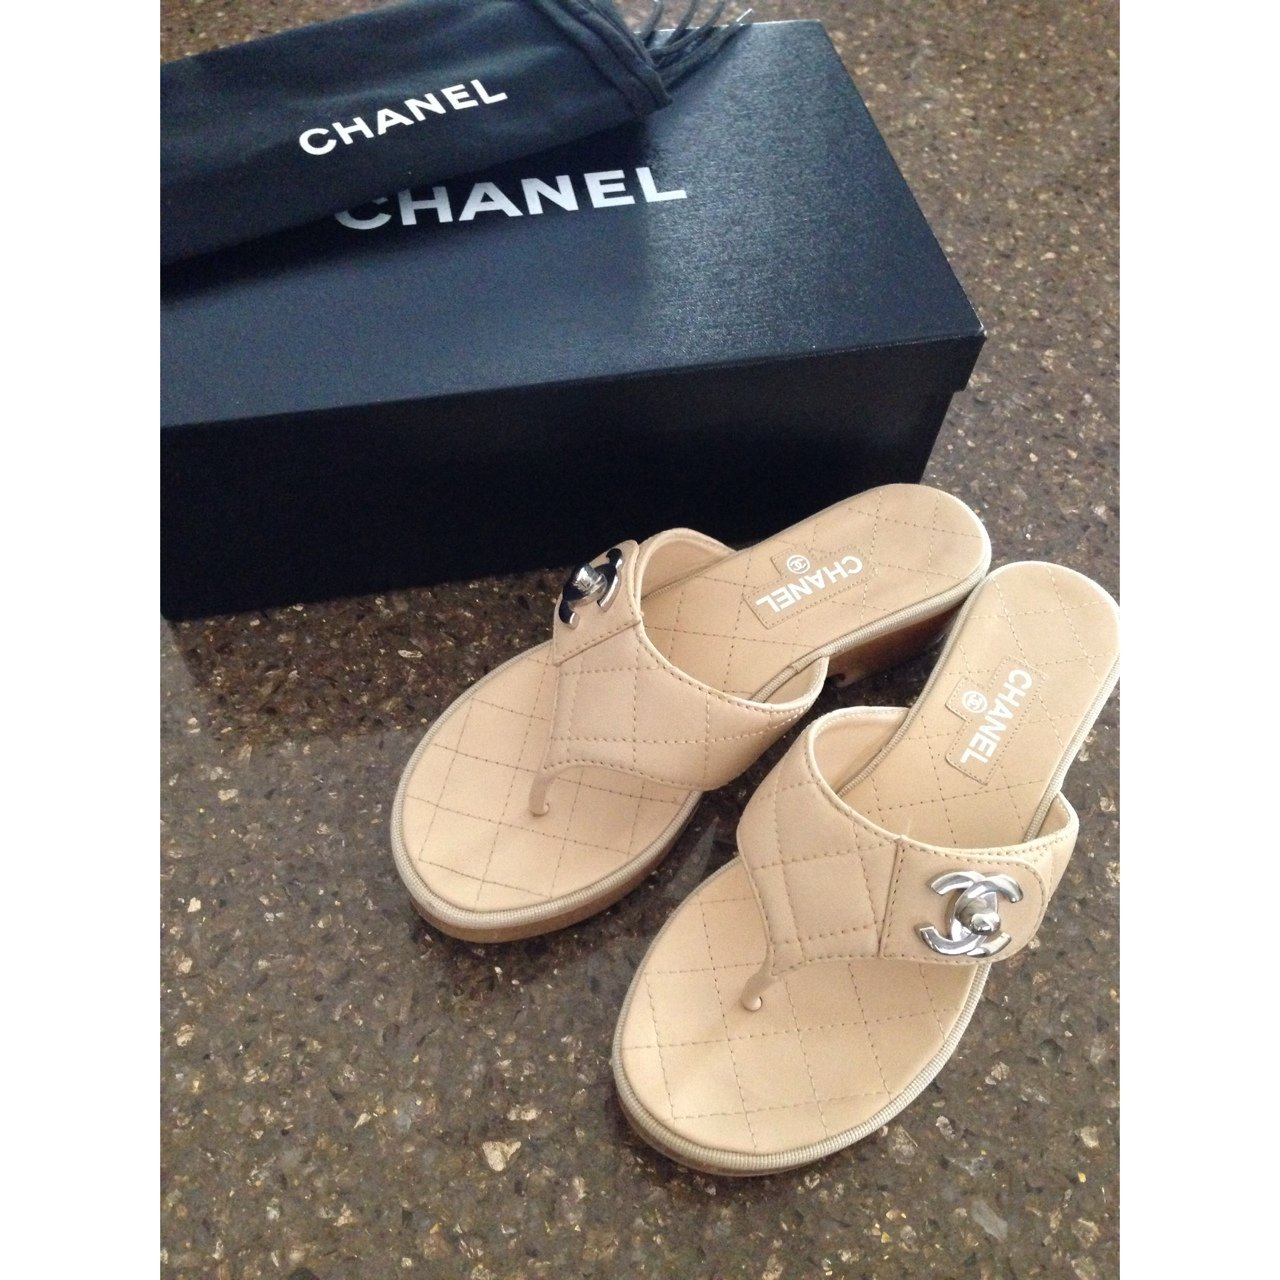 736ba2169f68 CHANEL CC Logo Quilted Thong Sandals in Beige    Worn once  - Depop